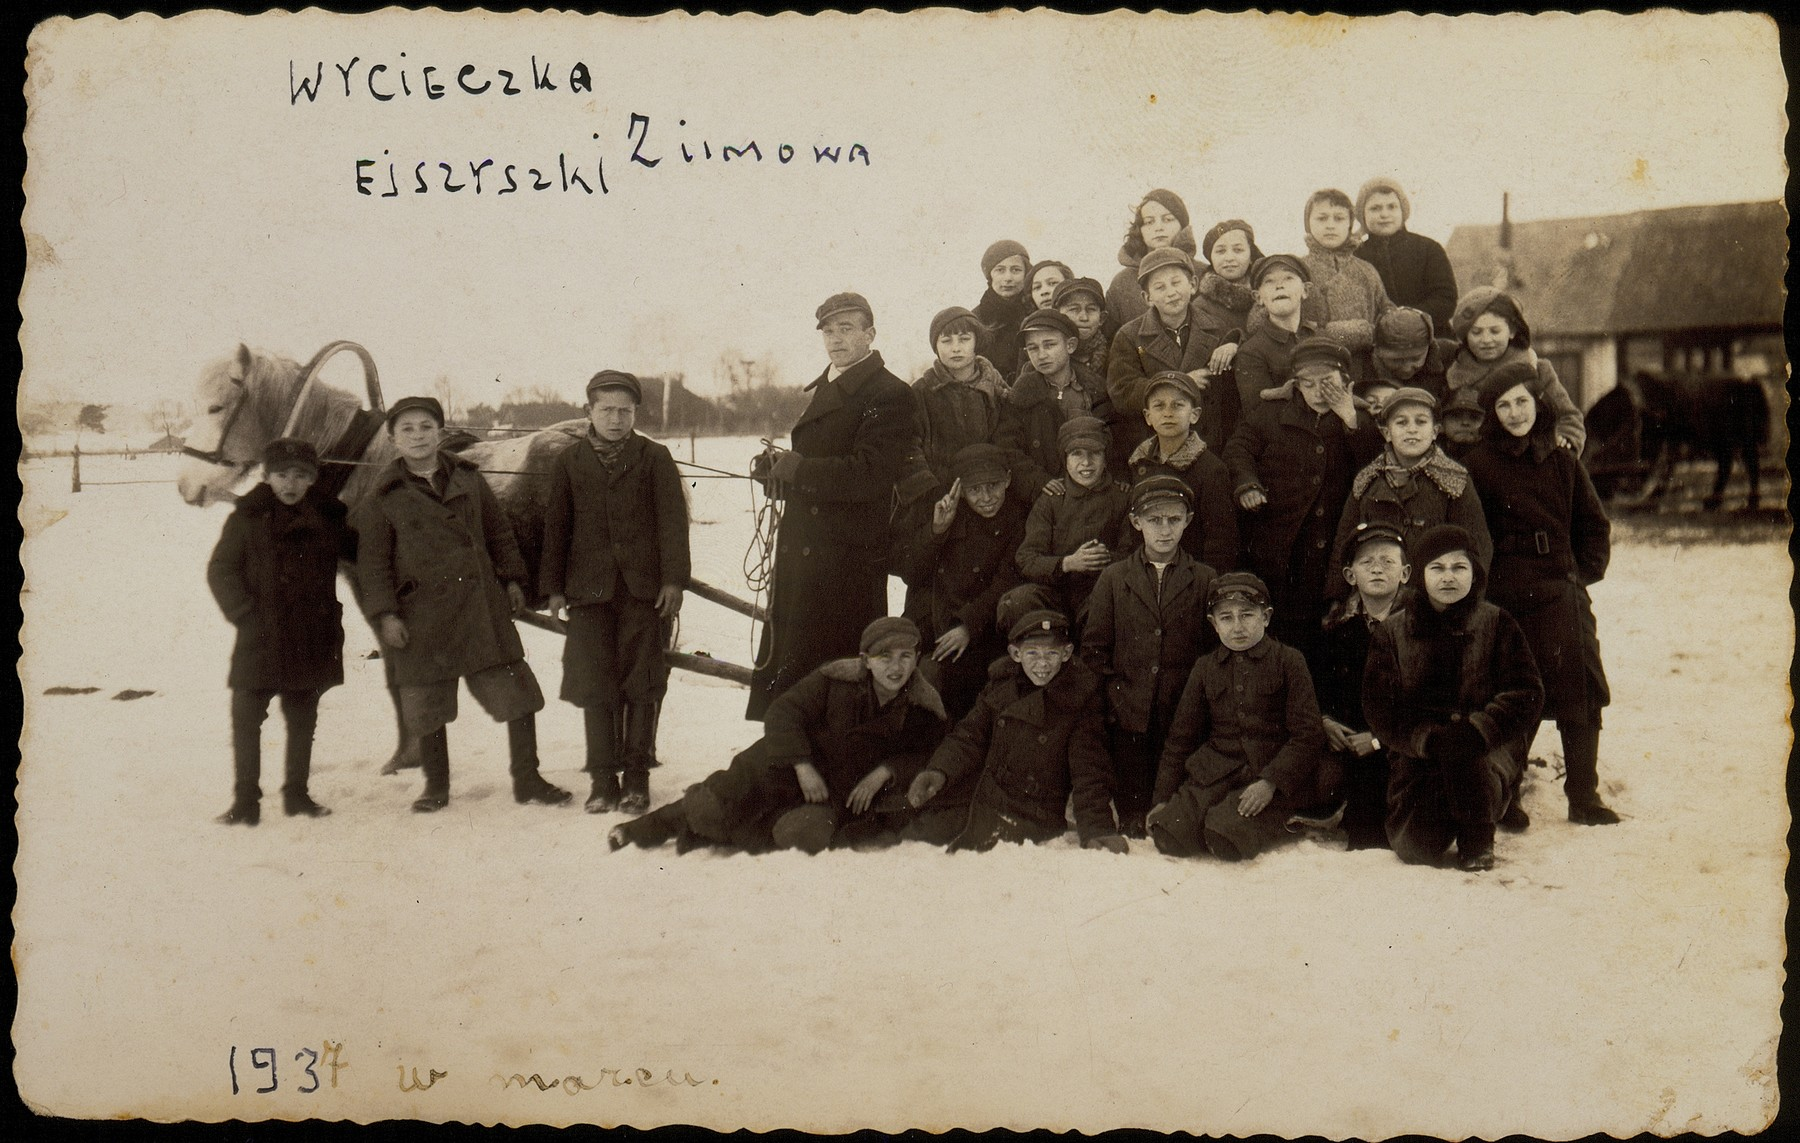 A school class gathers by a horse-drawn sleigh during a winter nature trip to the countryside.  Only three boys survived the Holocaust as teenage partisans:  Layzer Balon (sitting in the snow, left, next to the teacher's feet);  Moshe Edelstein (standing, third from left); and Reuven Paikowski (top row, third from left, biting his lips). The teacher, Leibke Botwinik was severely wounded by the Polish Home Army. Hirshke Mendelowitch (front row, fourth from right) was also a victim of the Polish Home Army. All the others were murdered  in the September 1941 massacre in Eisiskes.